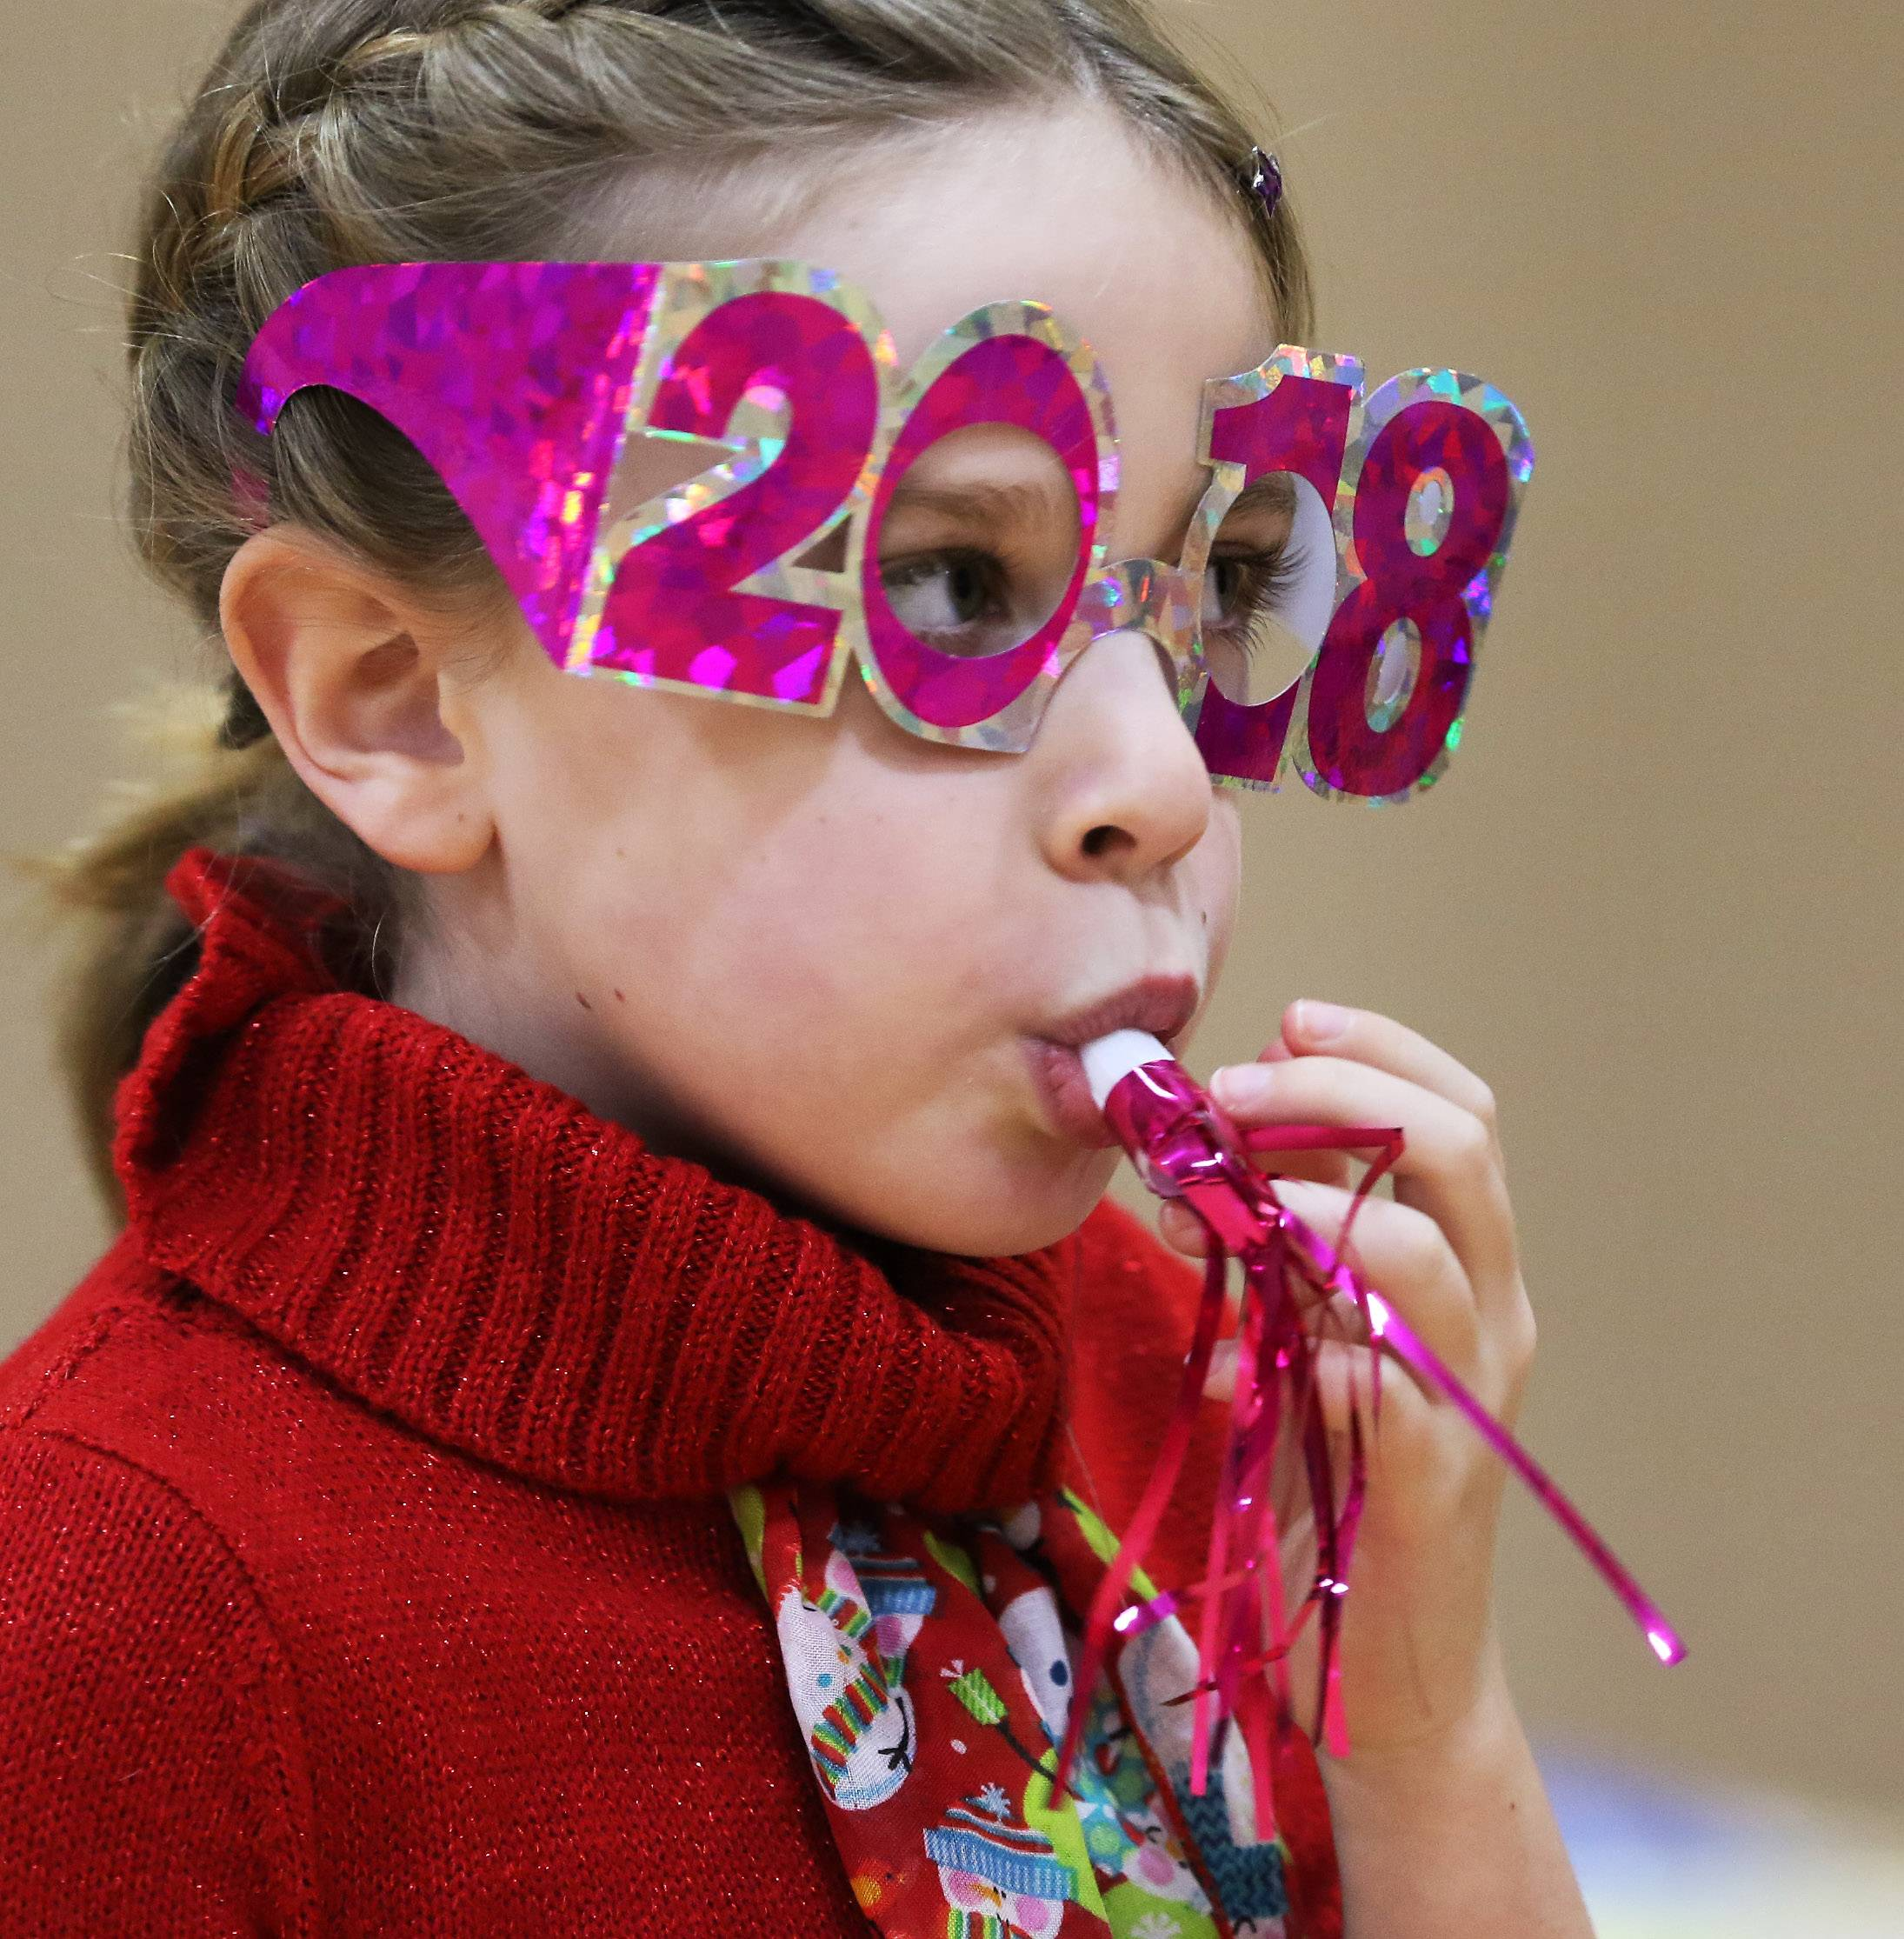 Seven-year-old Jodee Evans of Lake Zurich wears 2108 glasses as she blows a horn during Happy Noon Year at Wheeling Park District Community Recreation Center on Sunday. Families enjoyed dancing, games, a ballon drop, and a grape juice toast to welcome in the new year.